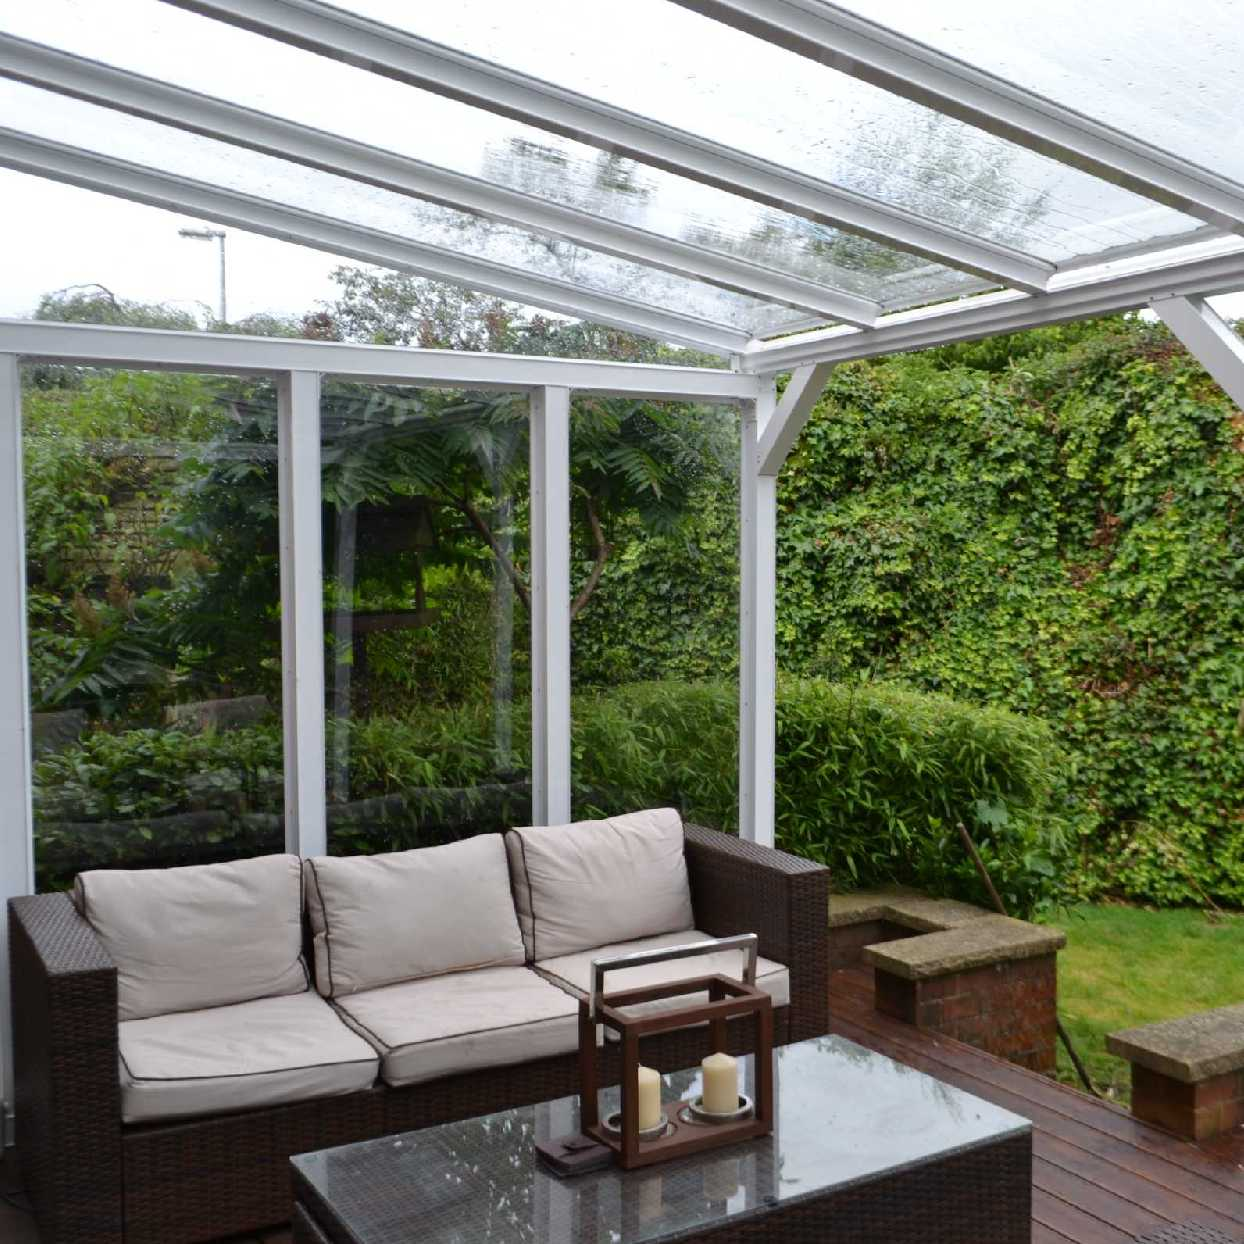 Omega Smart White Lean-To Canopy UNGLAZED for 6mm Glazing - 9.1m (W) x 2.5m (P), (5) Supporting Posts